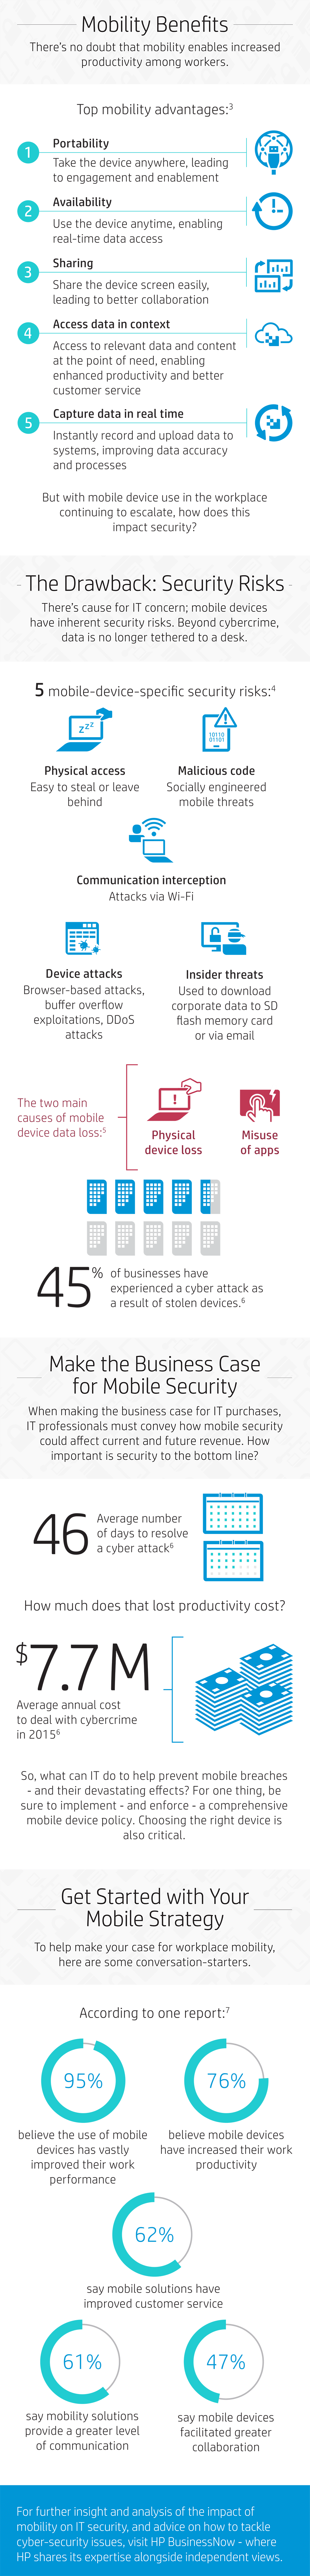 How business mobility impacts business security infographic part 2.png